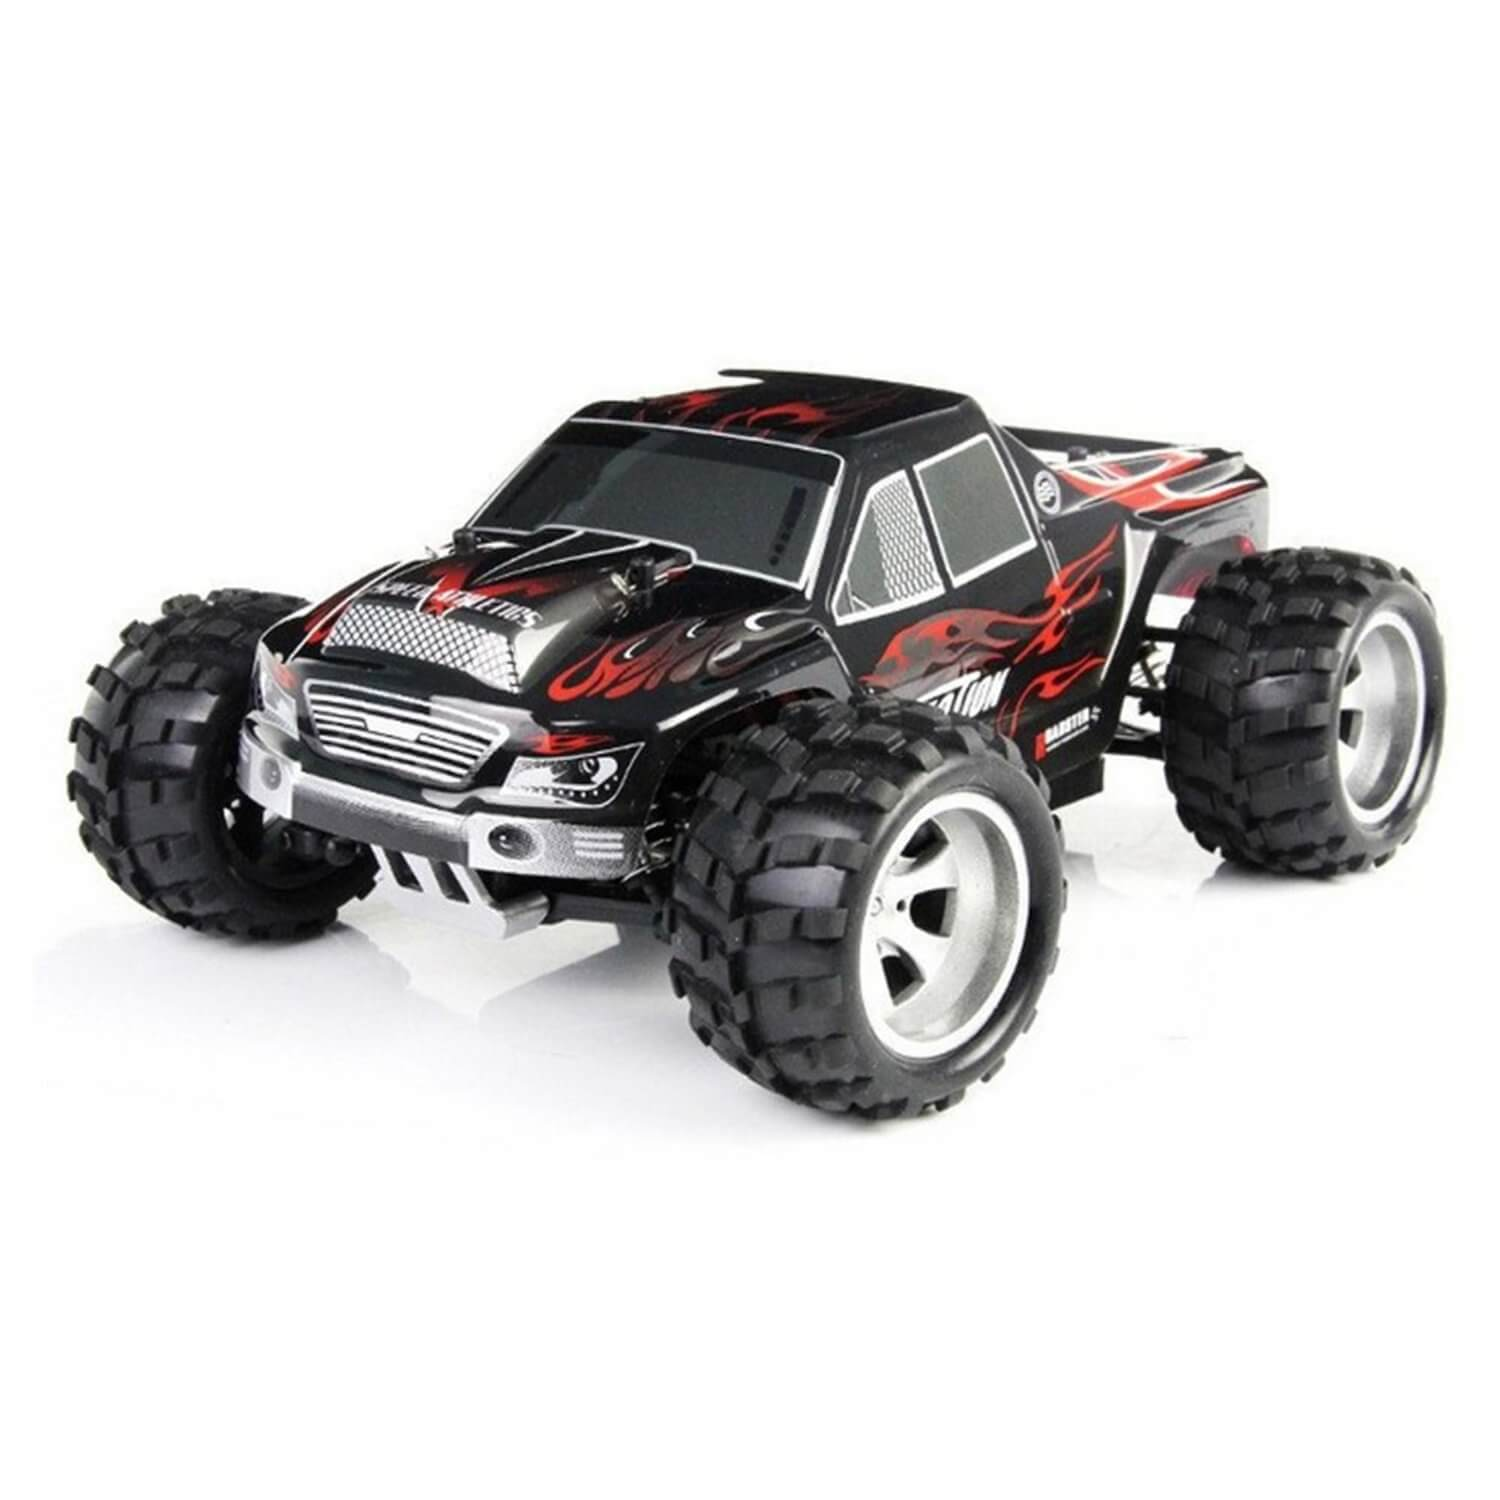 HSP Himoto Monstertruck Vortex 4WD